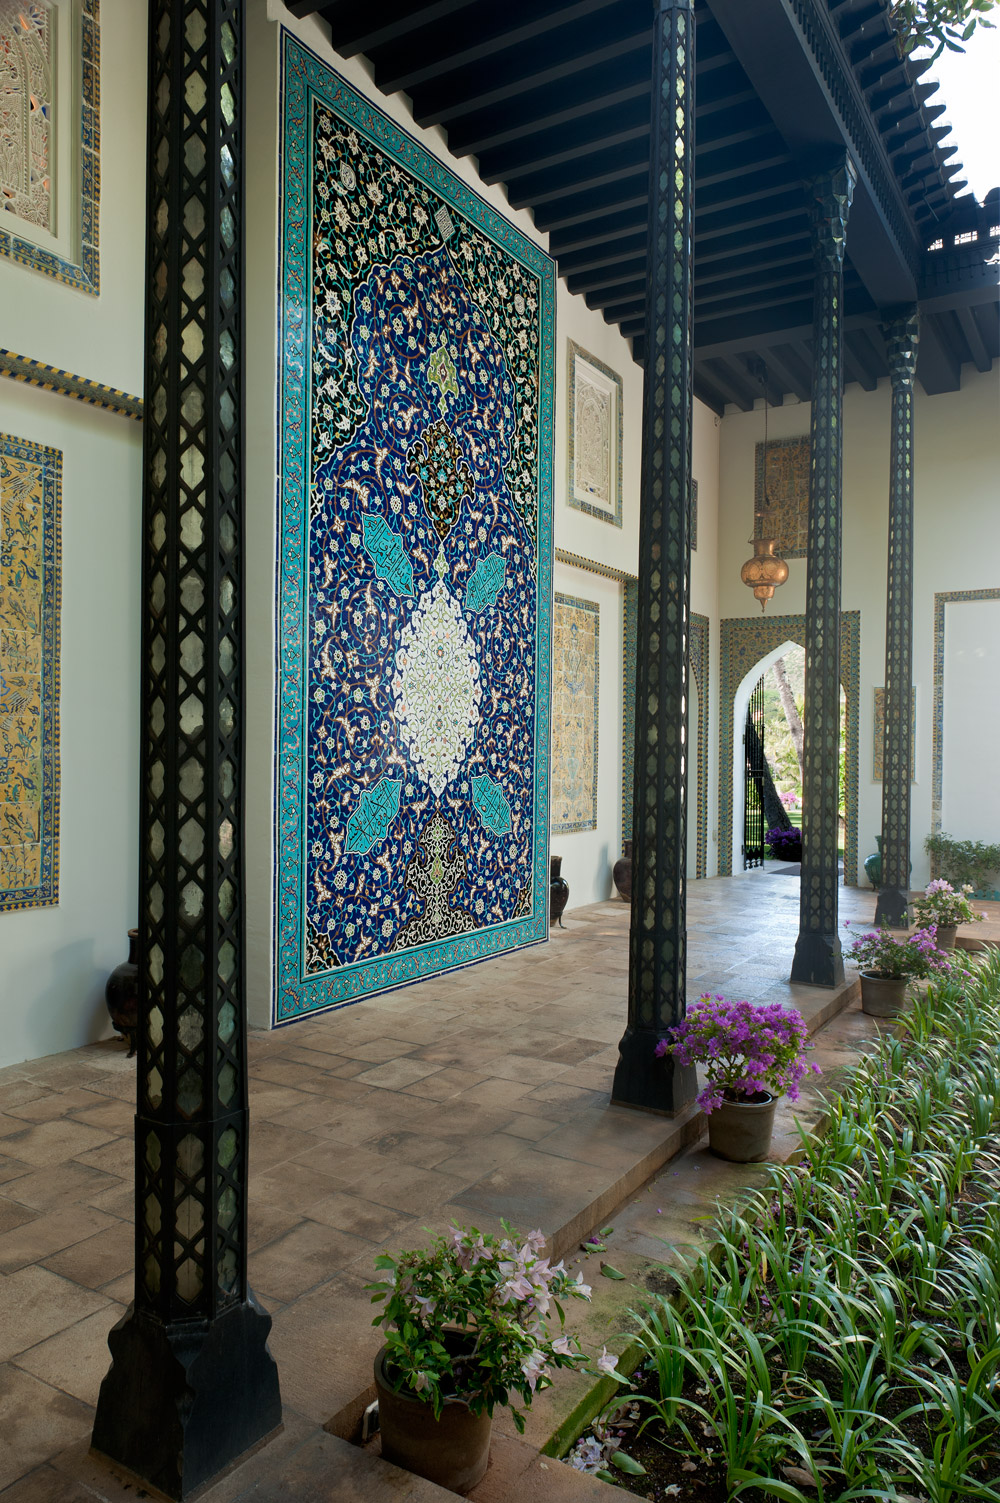 Mosaic Tile Panel in the Central Courtyard